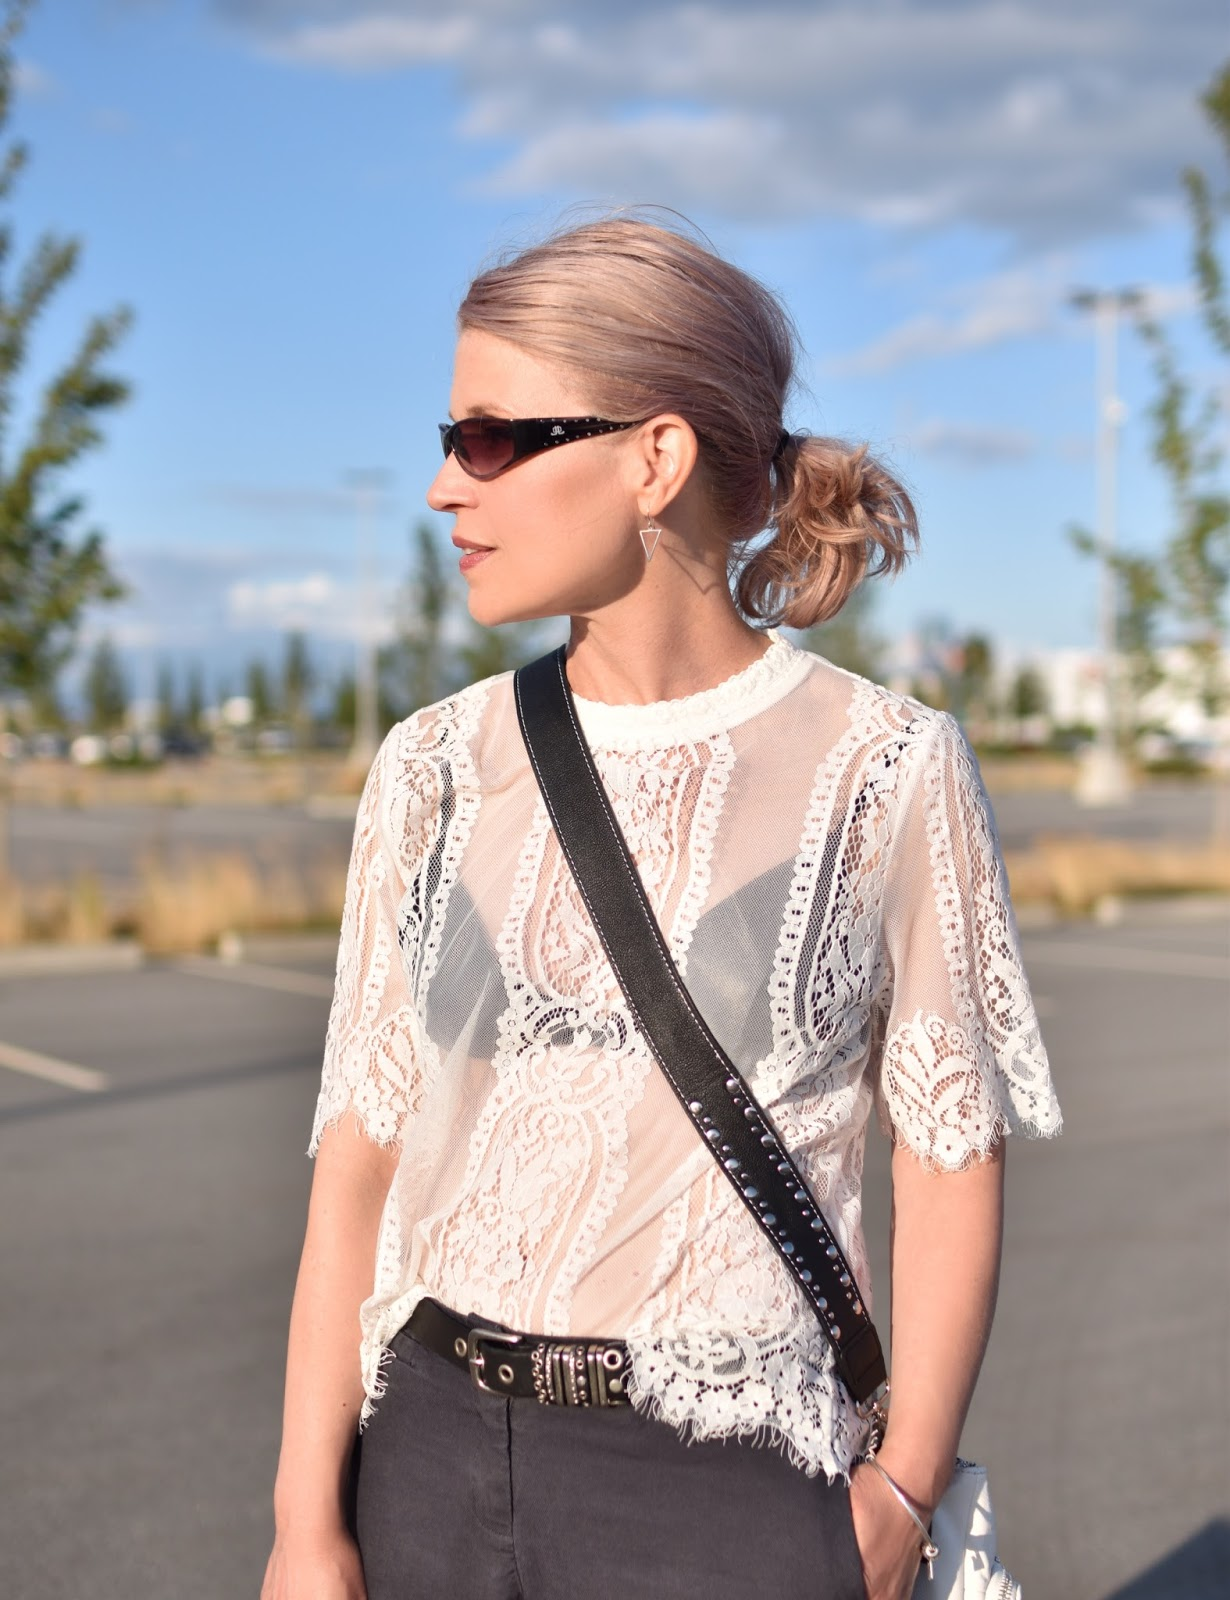 Monika Faulkner outfit inspiration - sheer lace top, cross-body bag, JLO sunglasses